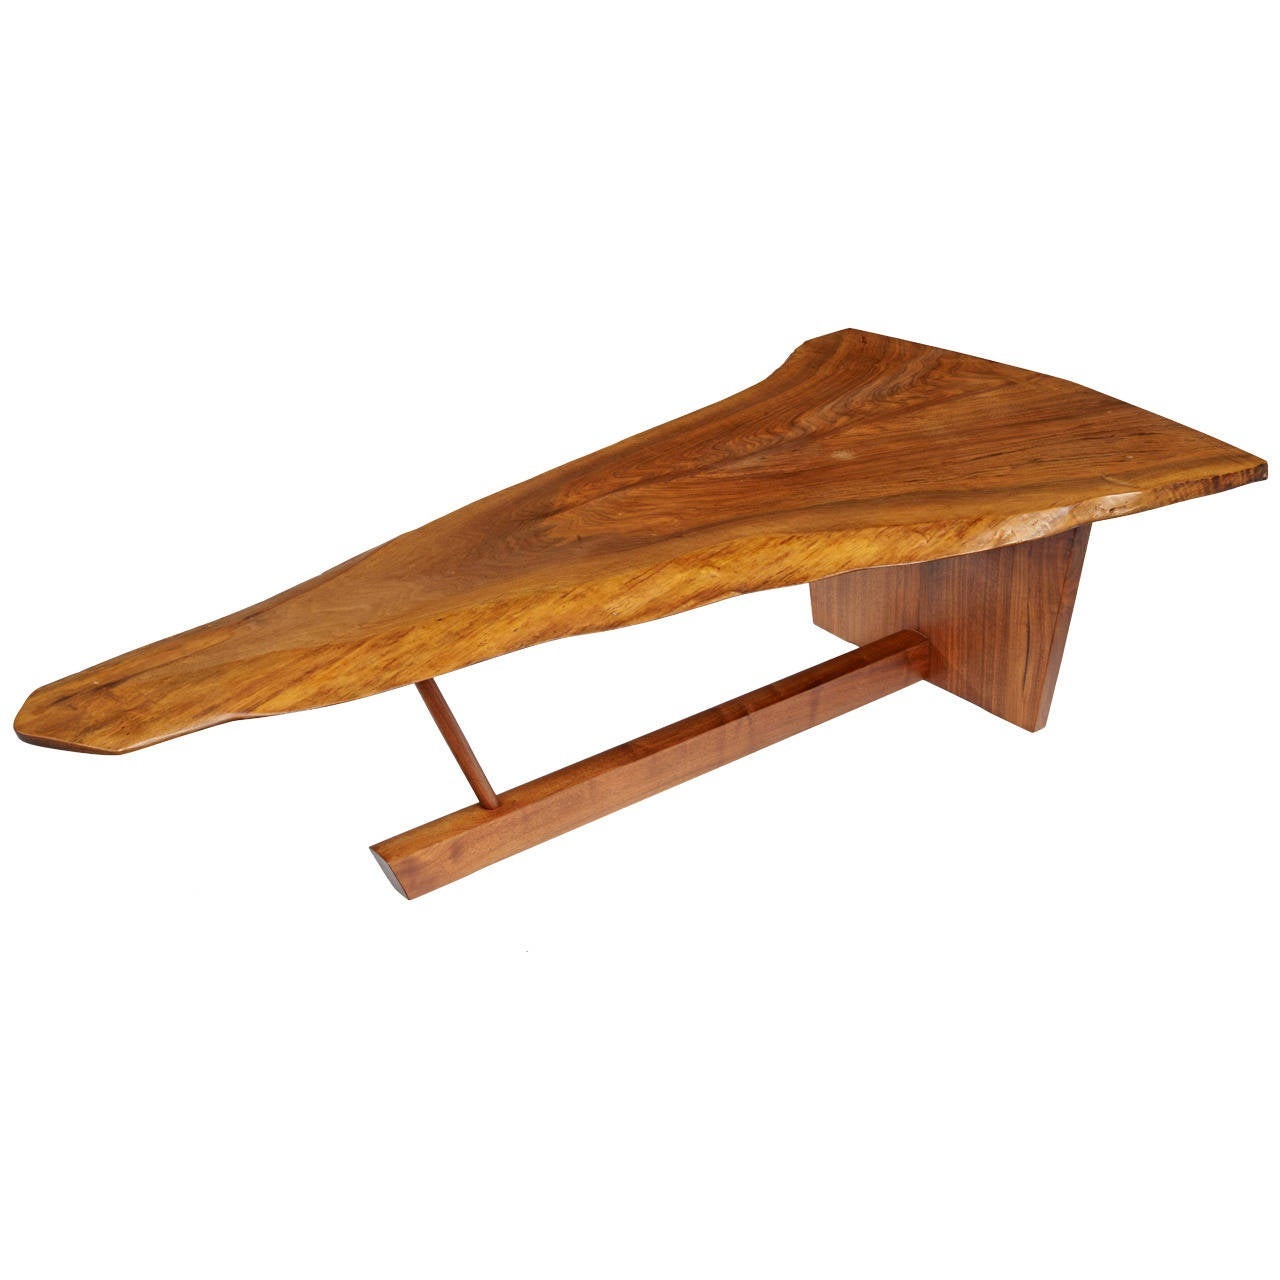 George nakashima minguren cocktail table for sale at 1stdibs for Cocktail tables